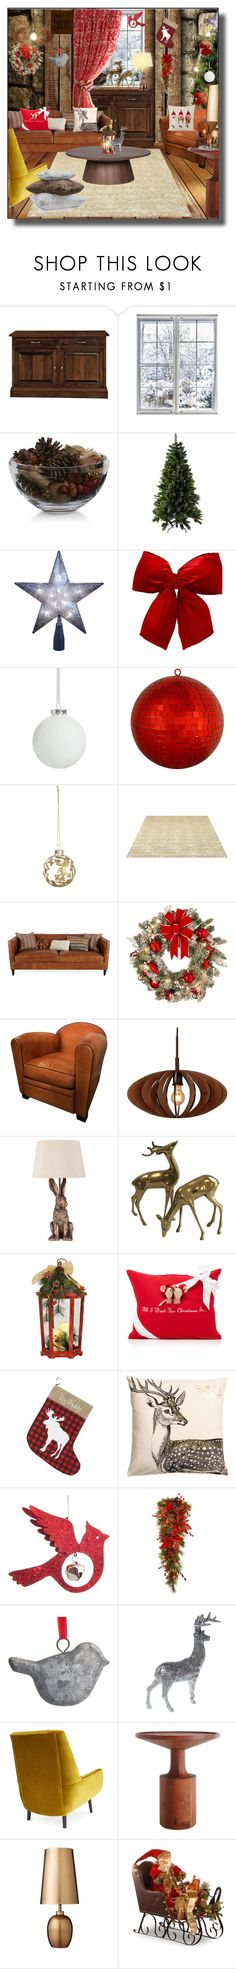 """""""Oh so Happy!"""" by kelly-floramoon-legg on Polyvore featuring interior, interiors, interior design, home, home decor, interior decorating, DutchCrafters, Crate and Barrel, Kurt Adler and Ball"""